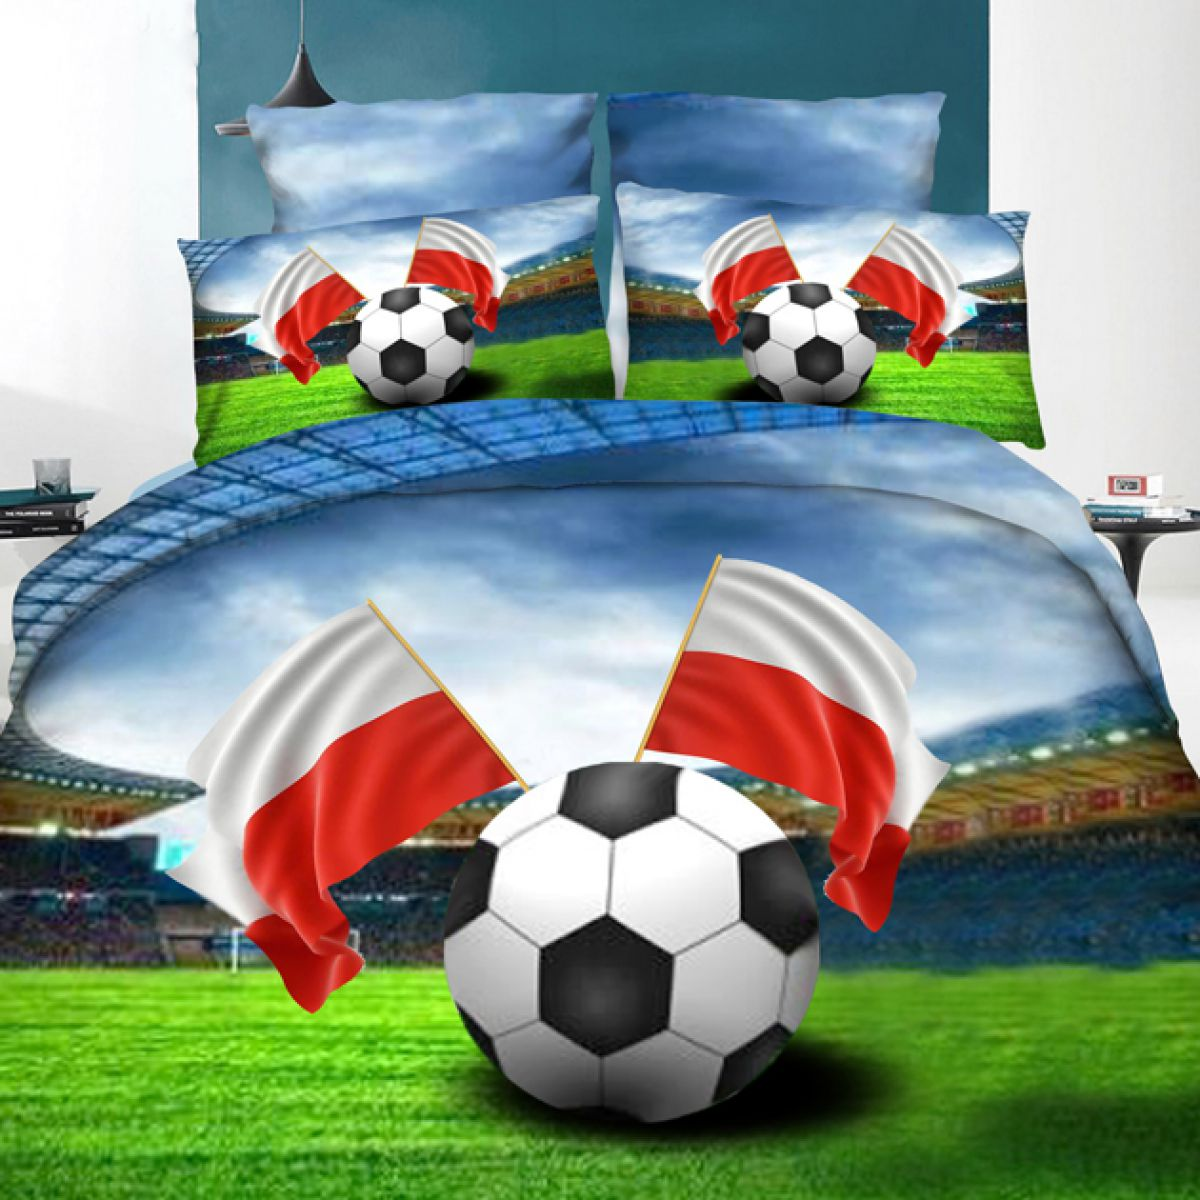 3D Beddings - Antonio - AML-302 - 160x200 cm - 4 pcs